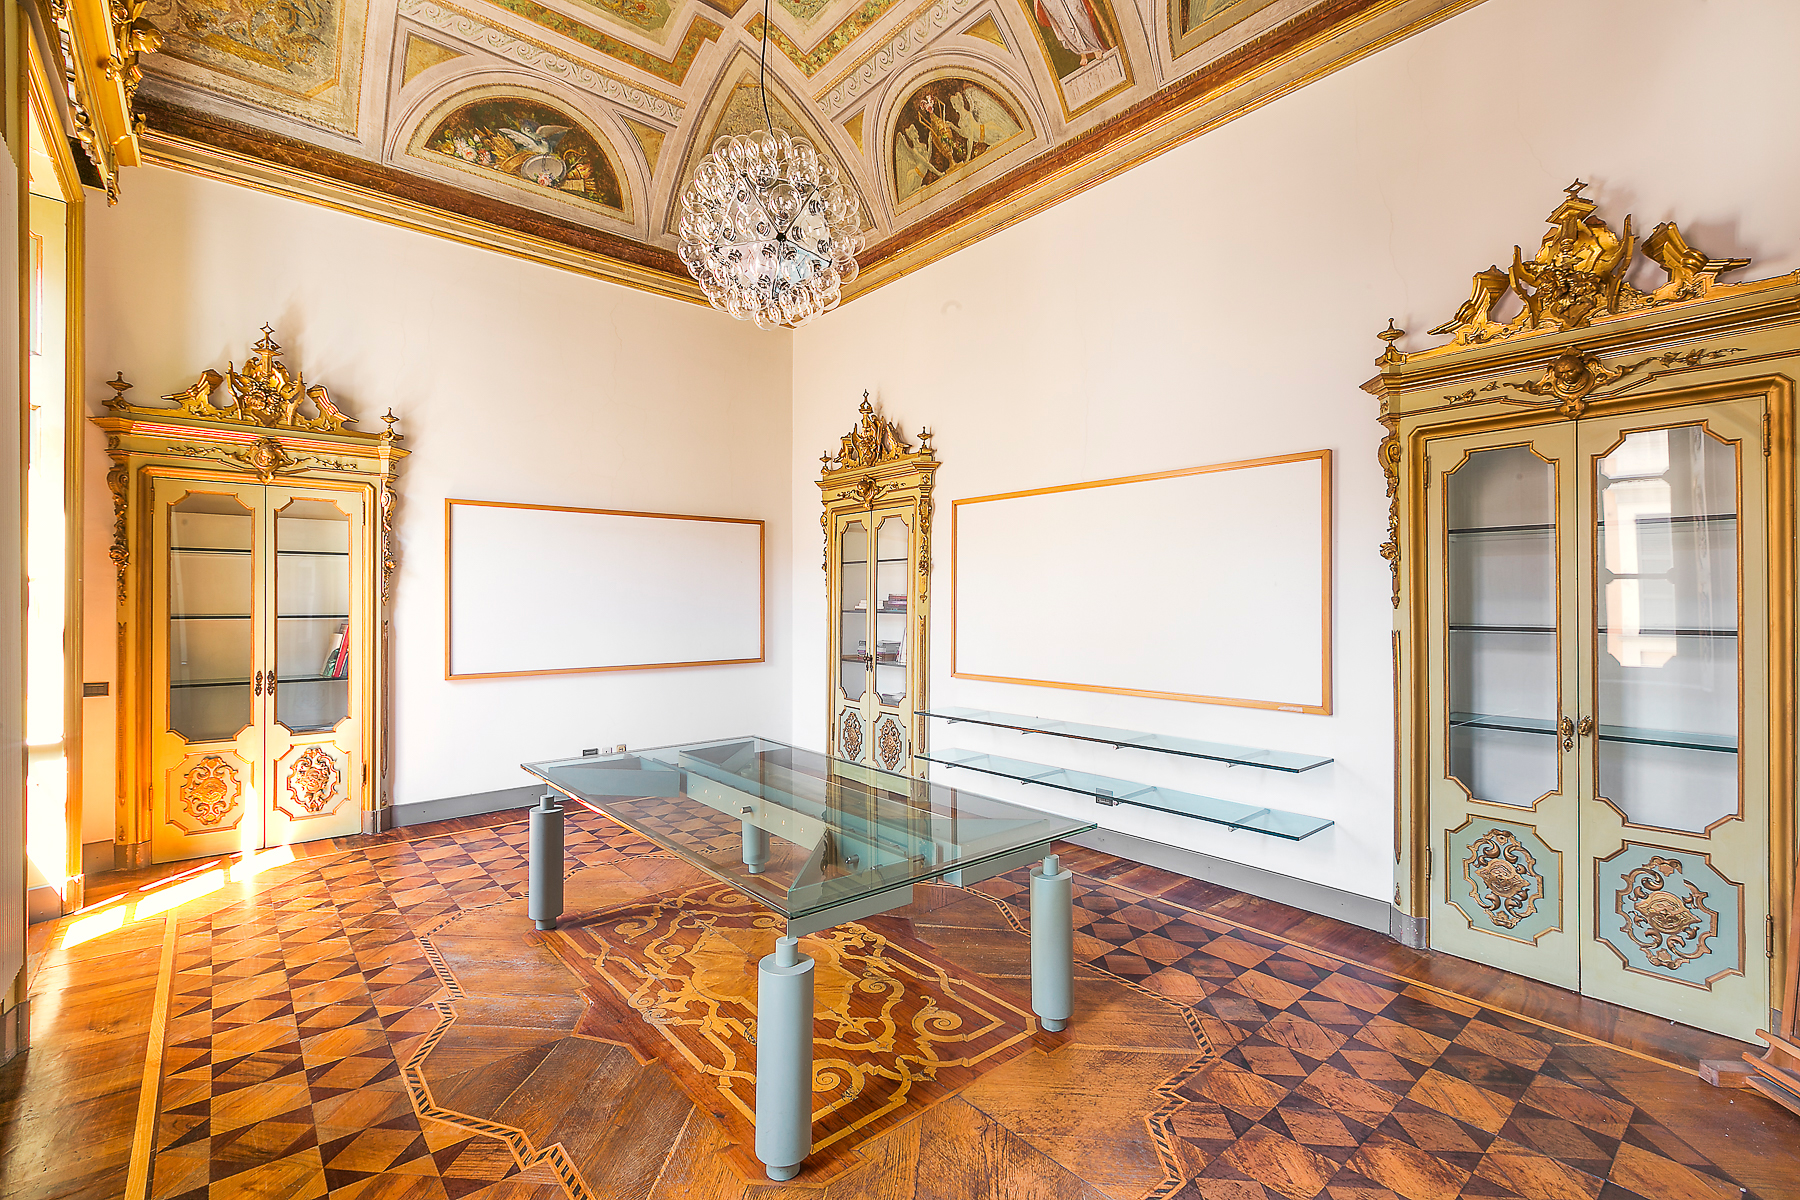 Additional photo for property listing at Exquisite office in the center of Novara Via Negroni Novara, Novara 28100 Italien